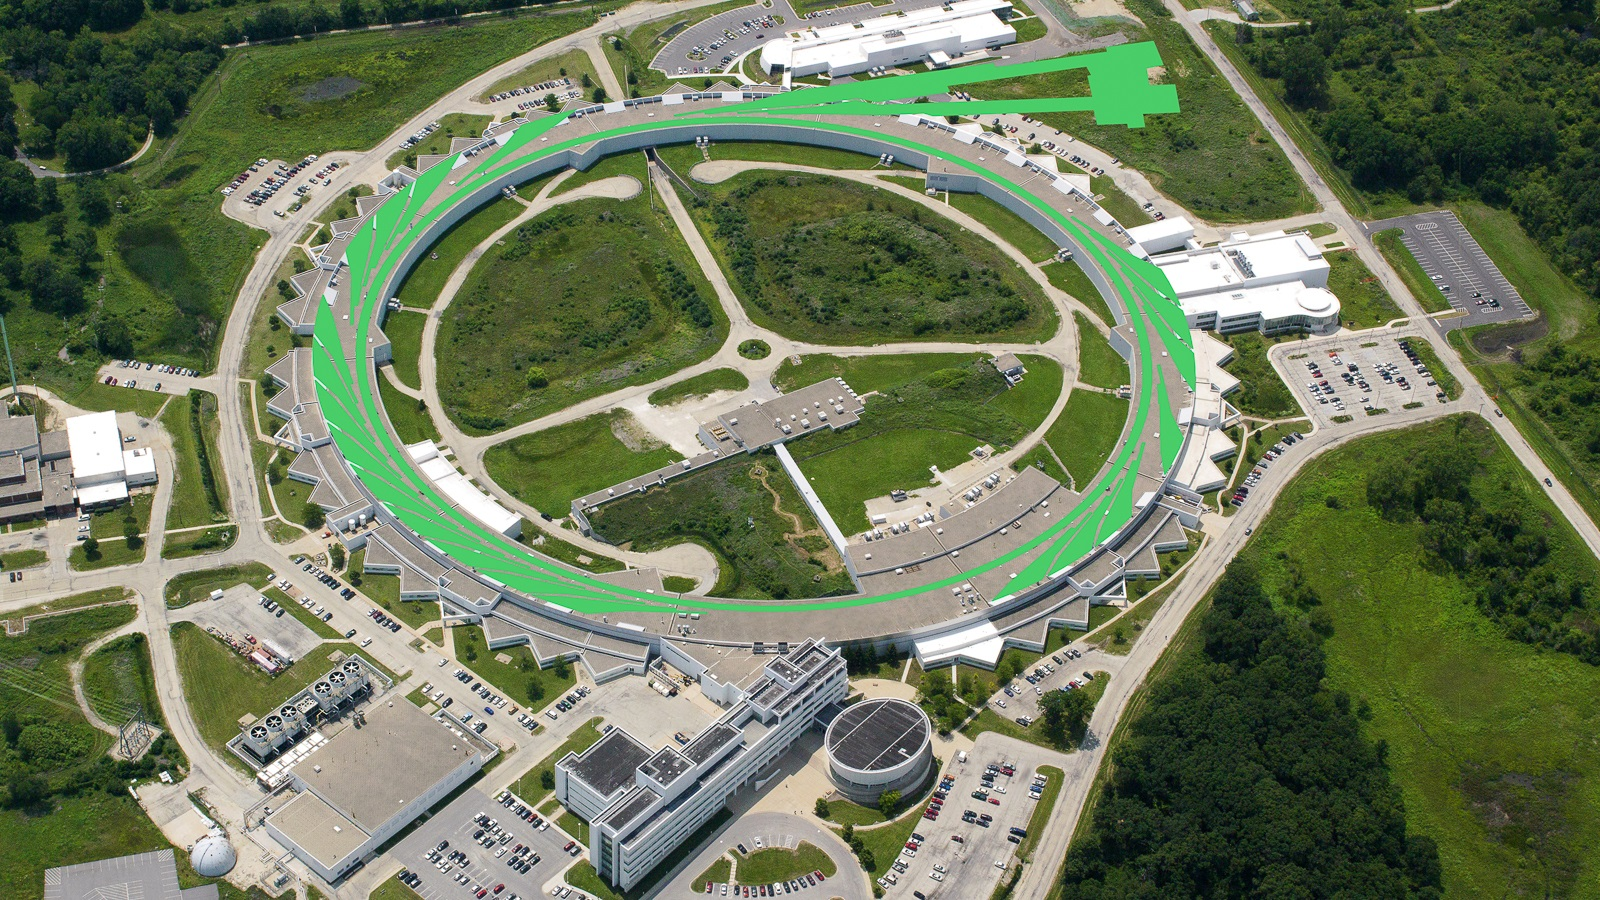 Aerial view of Advanced Photon Source, superimposed image ofo rec green swirls over ring, lines leading off to twtangular shapes. (Aerial photo by Tigerhill Studios. Illustration by Mark Lopez/ Argonne National Laboratory.)